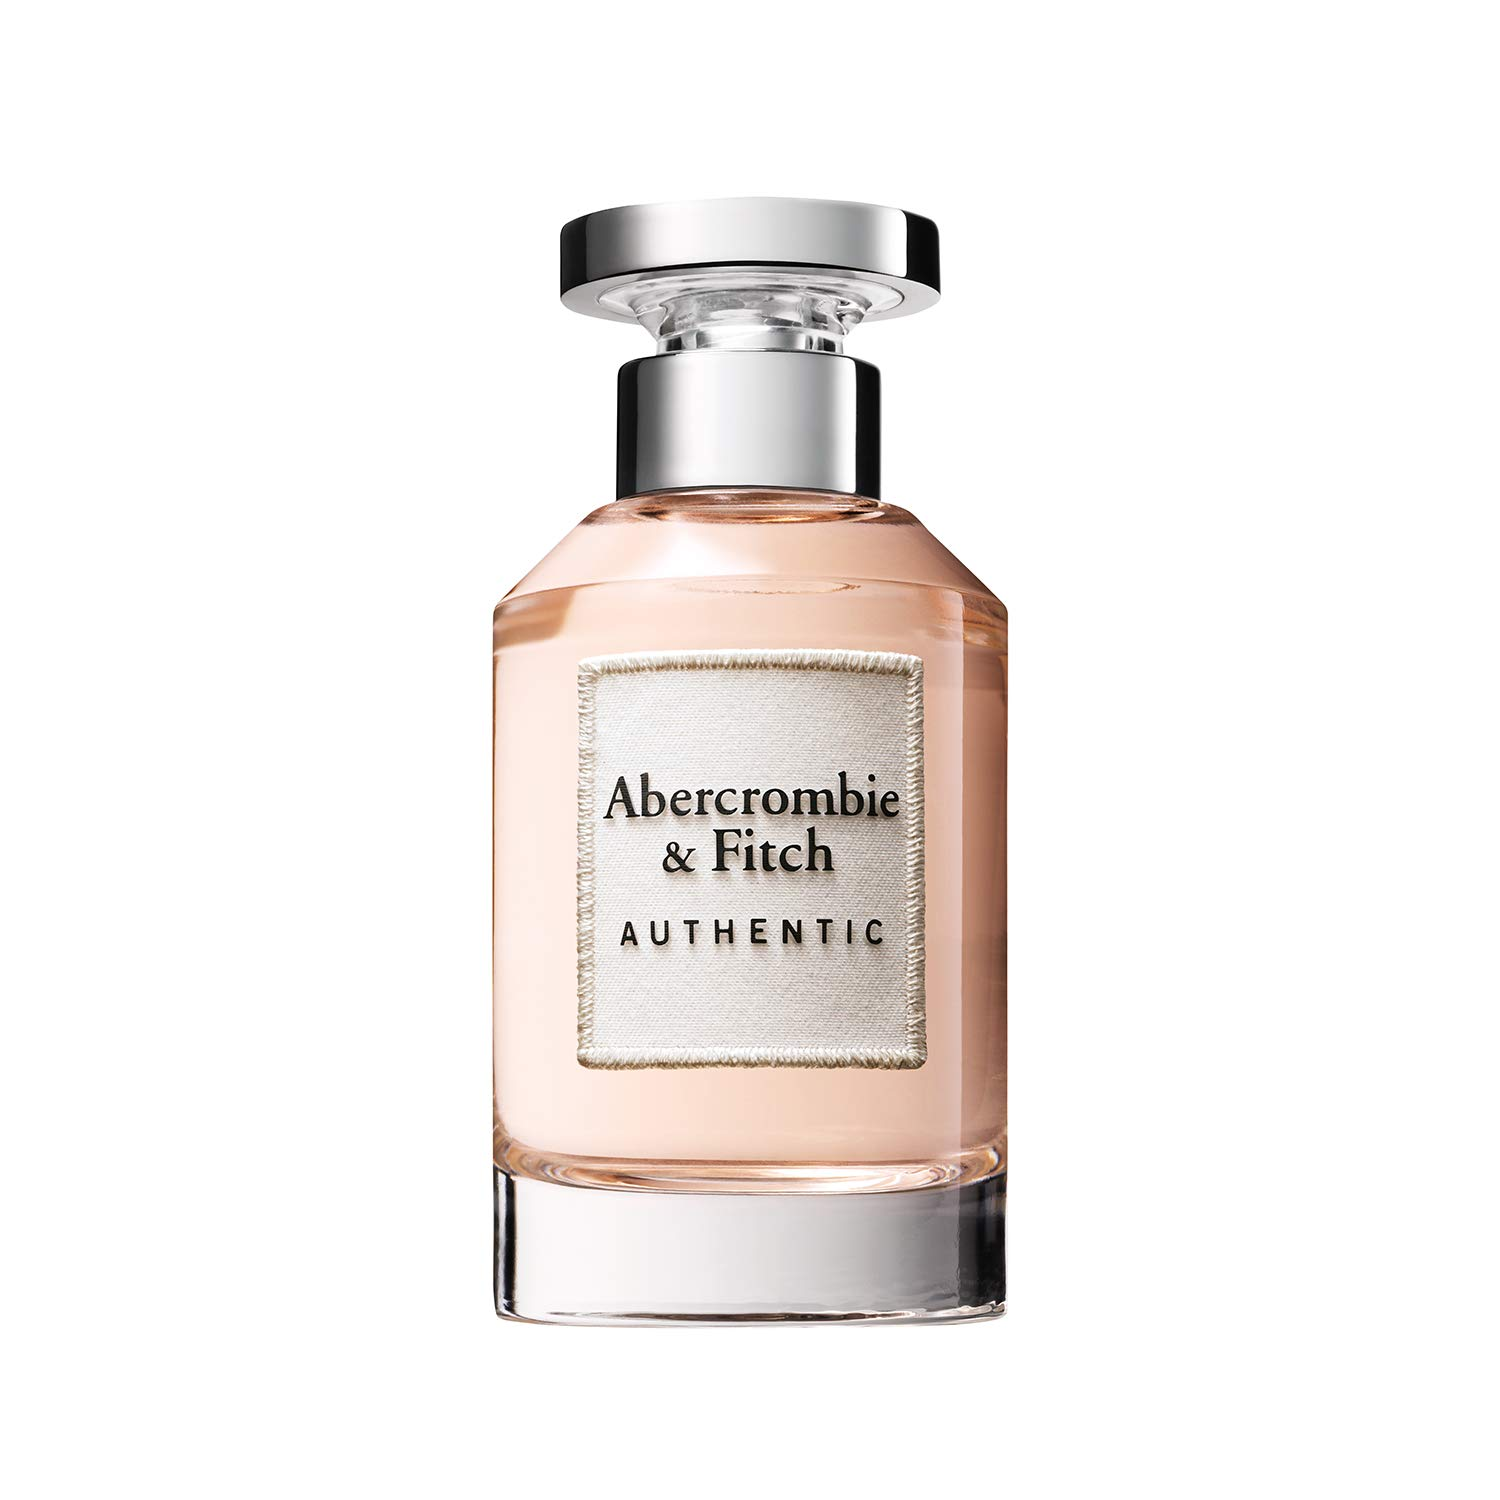 Abercrombie & Fitch Authentic by Abercrombie & Fitch Eau De Parfum Spray 3.4 oz 100 ml (Women)